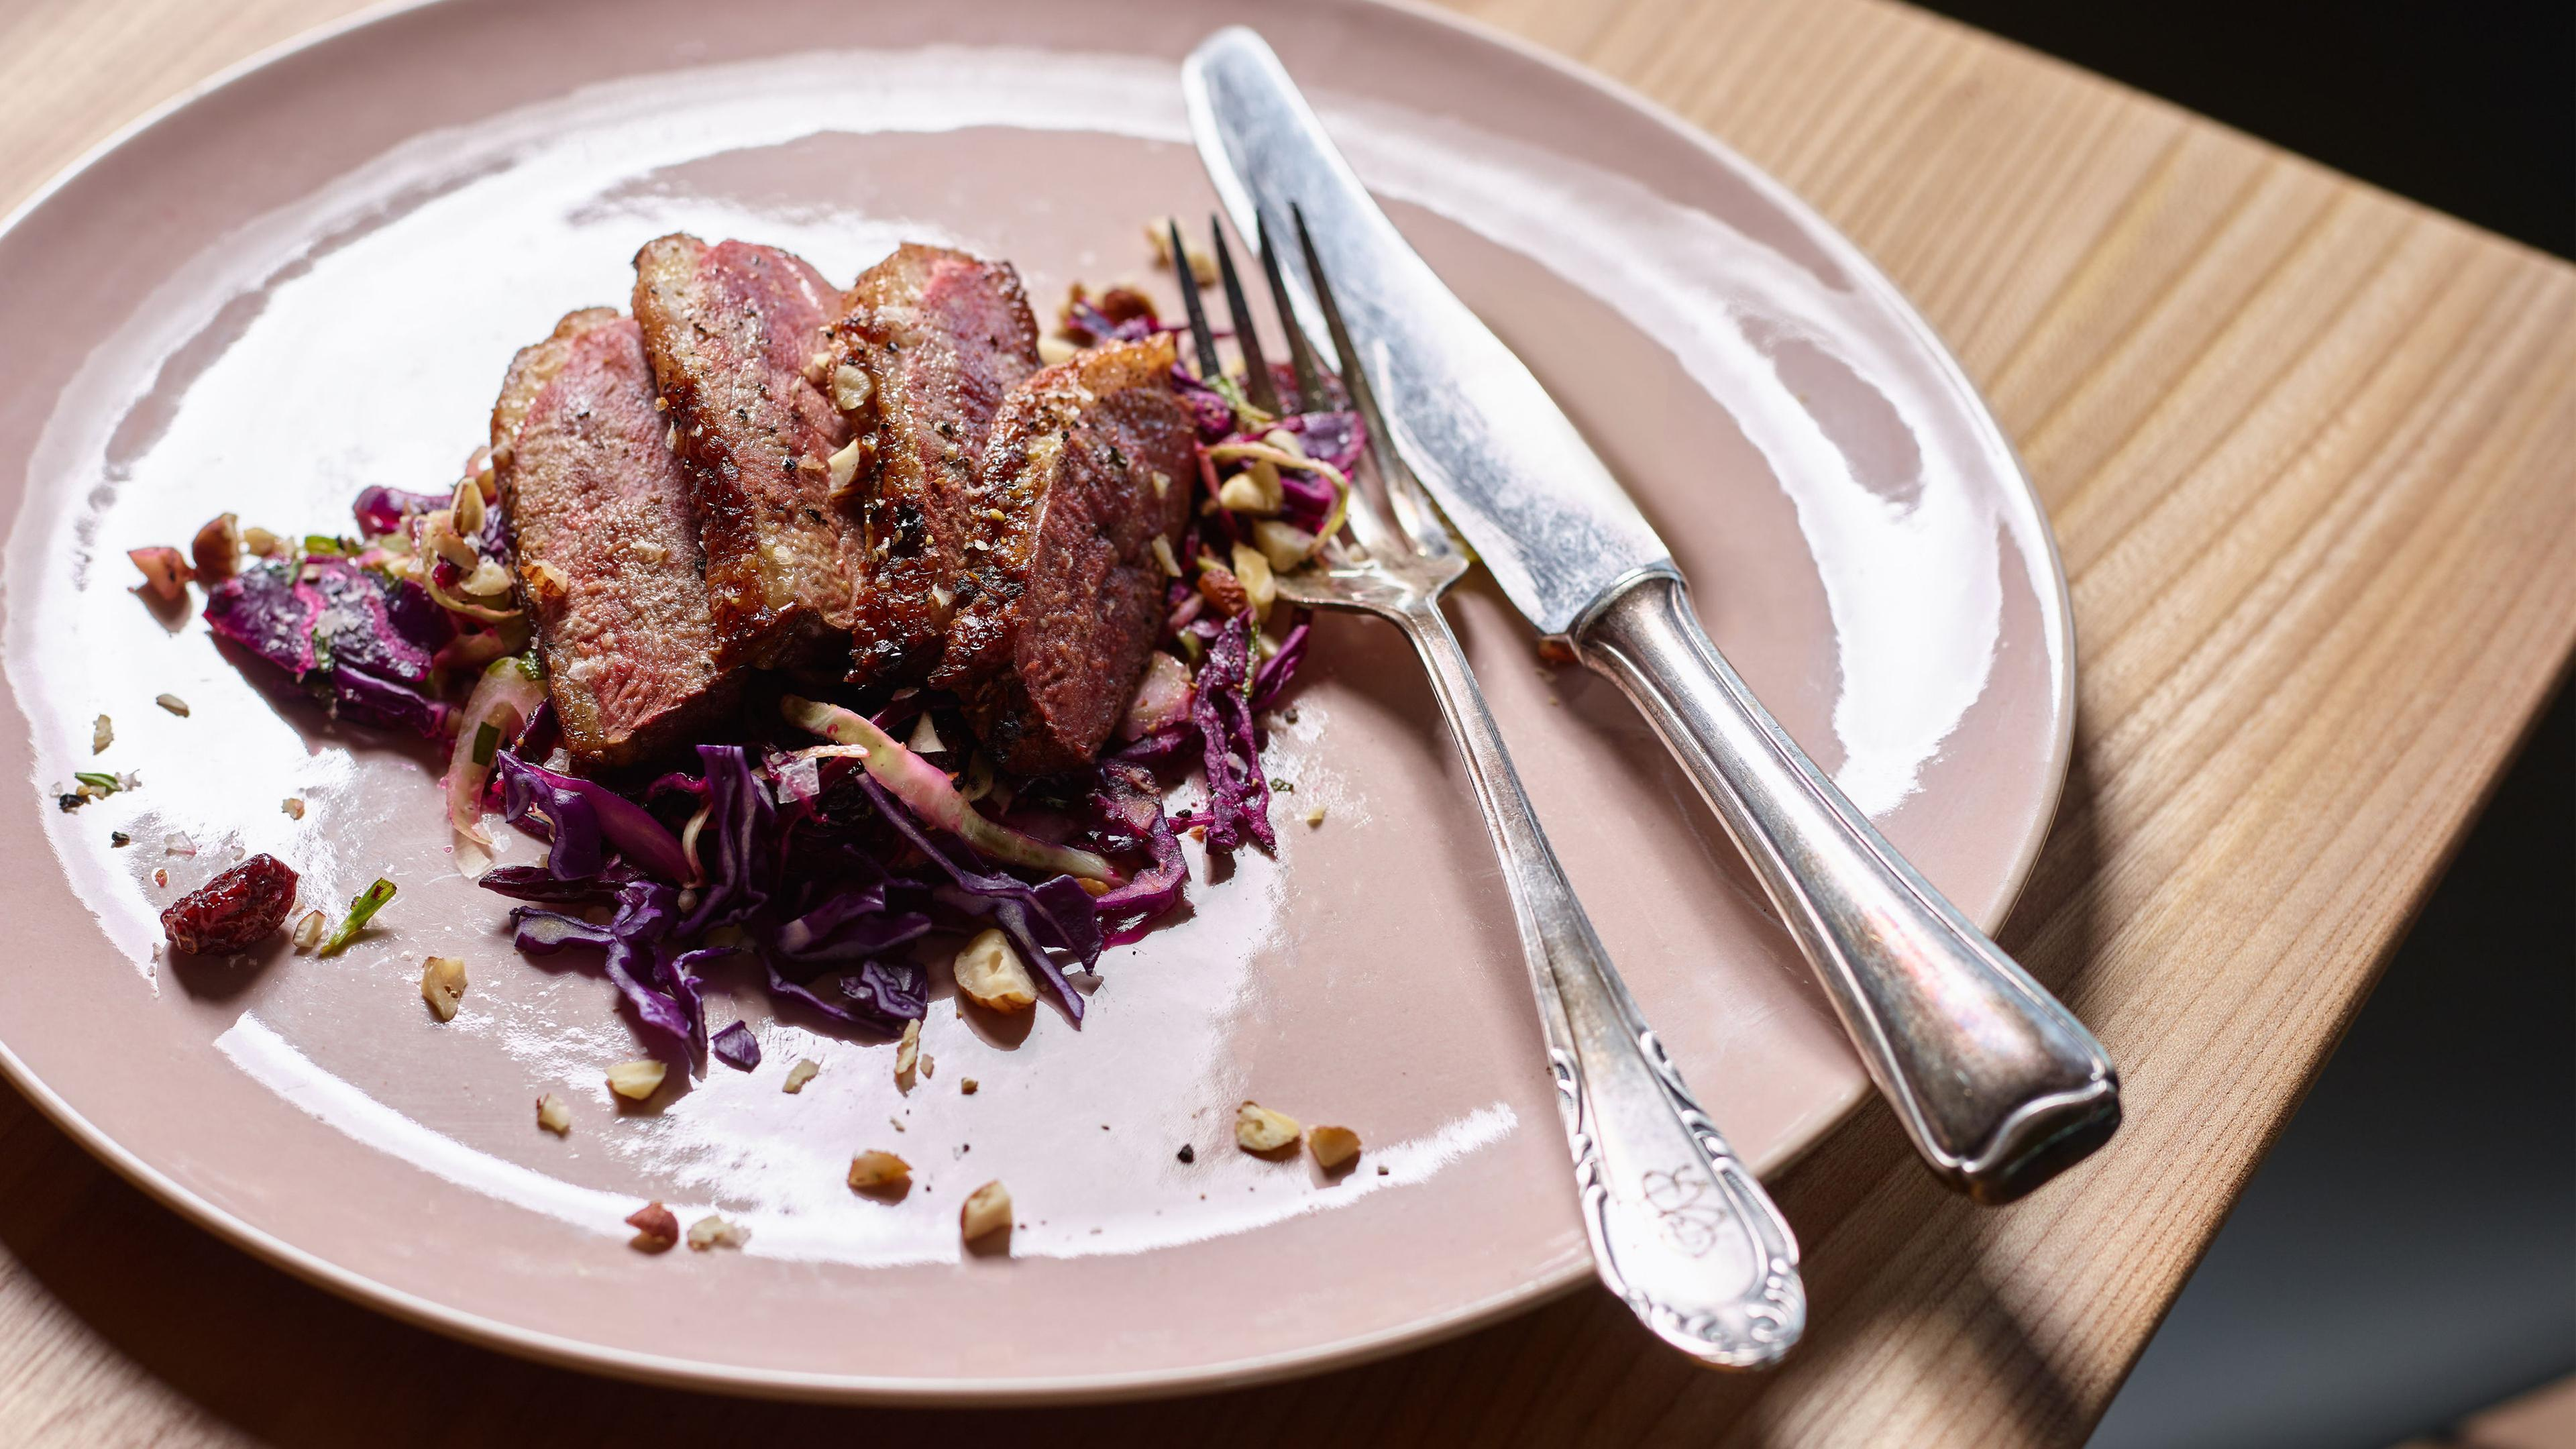 #3 Duck breast on red cabbage salad